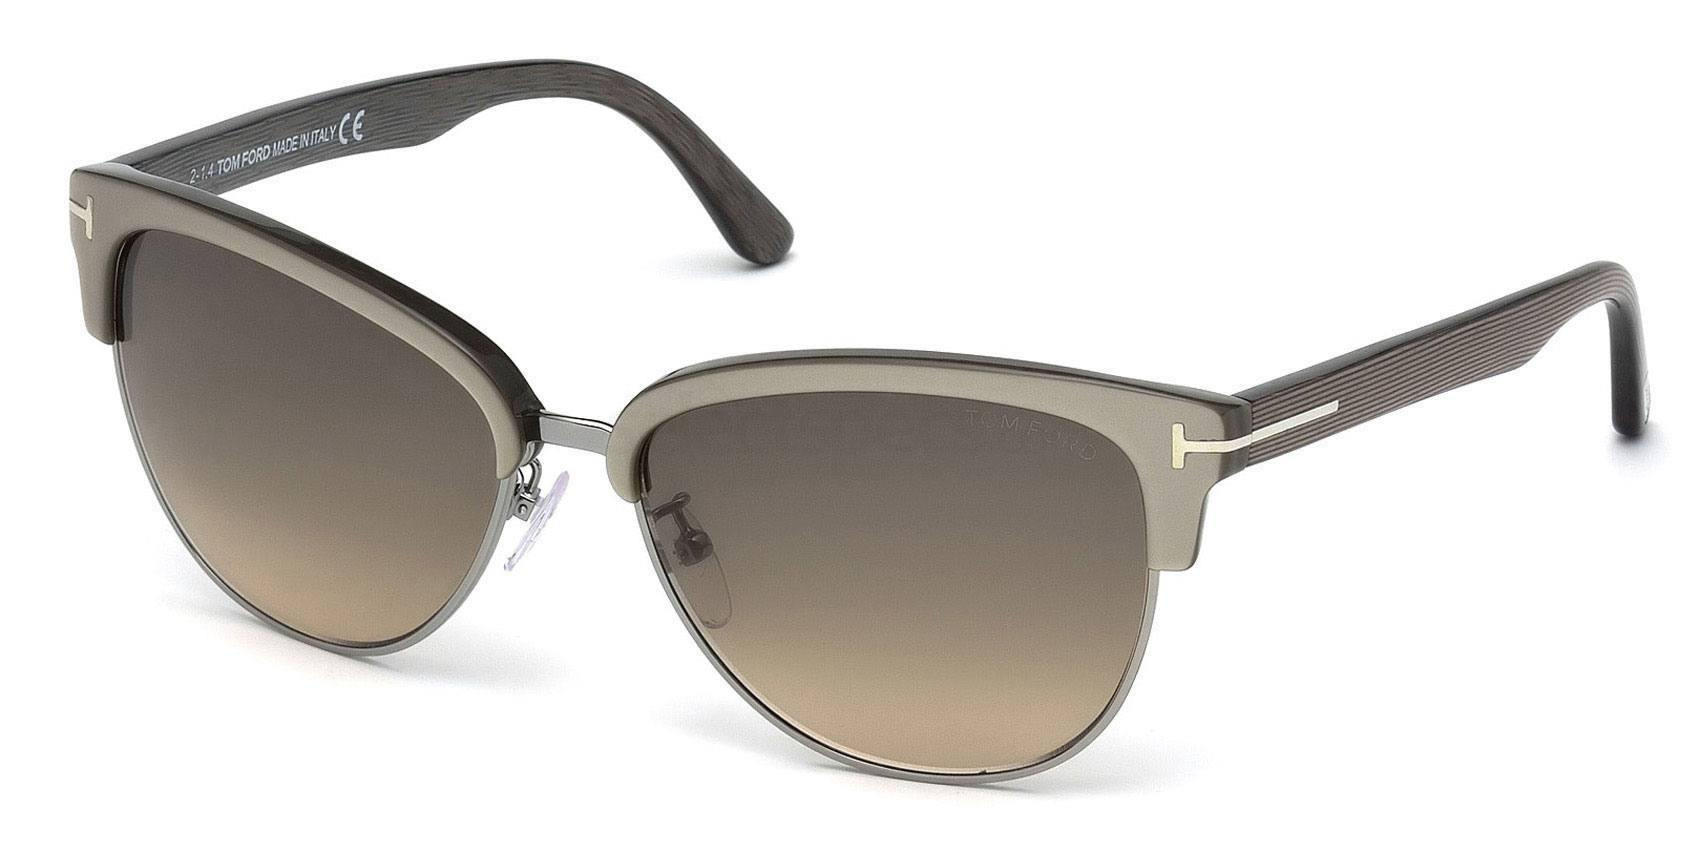 01A FT0368 Sunglasses, Tom Ford